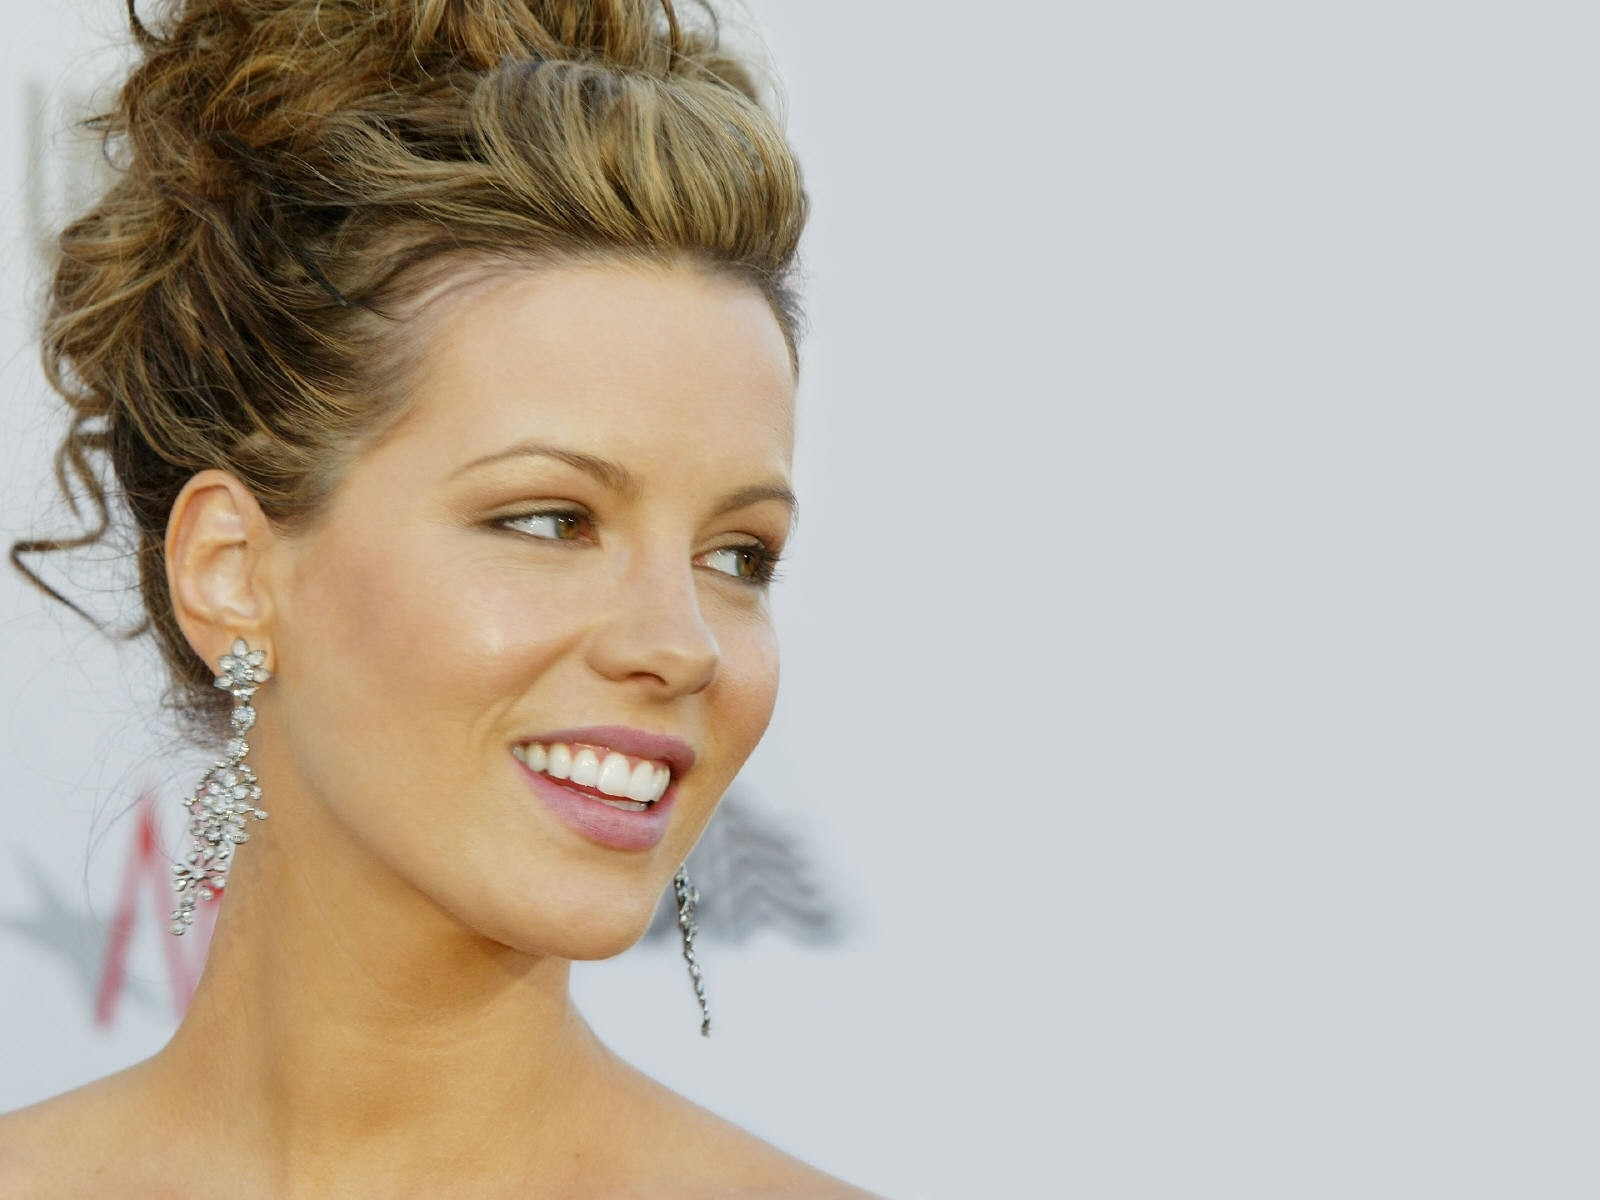 Wallpaper di Kate Beckinsale - 42